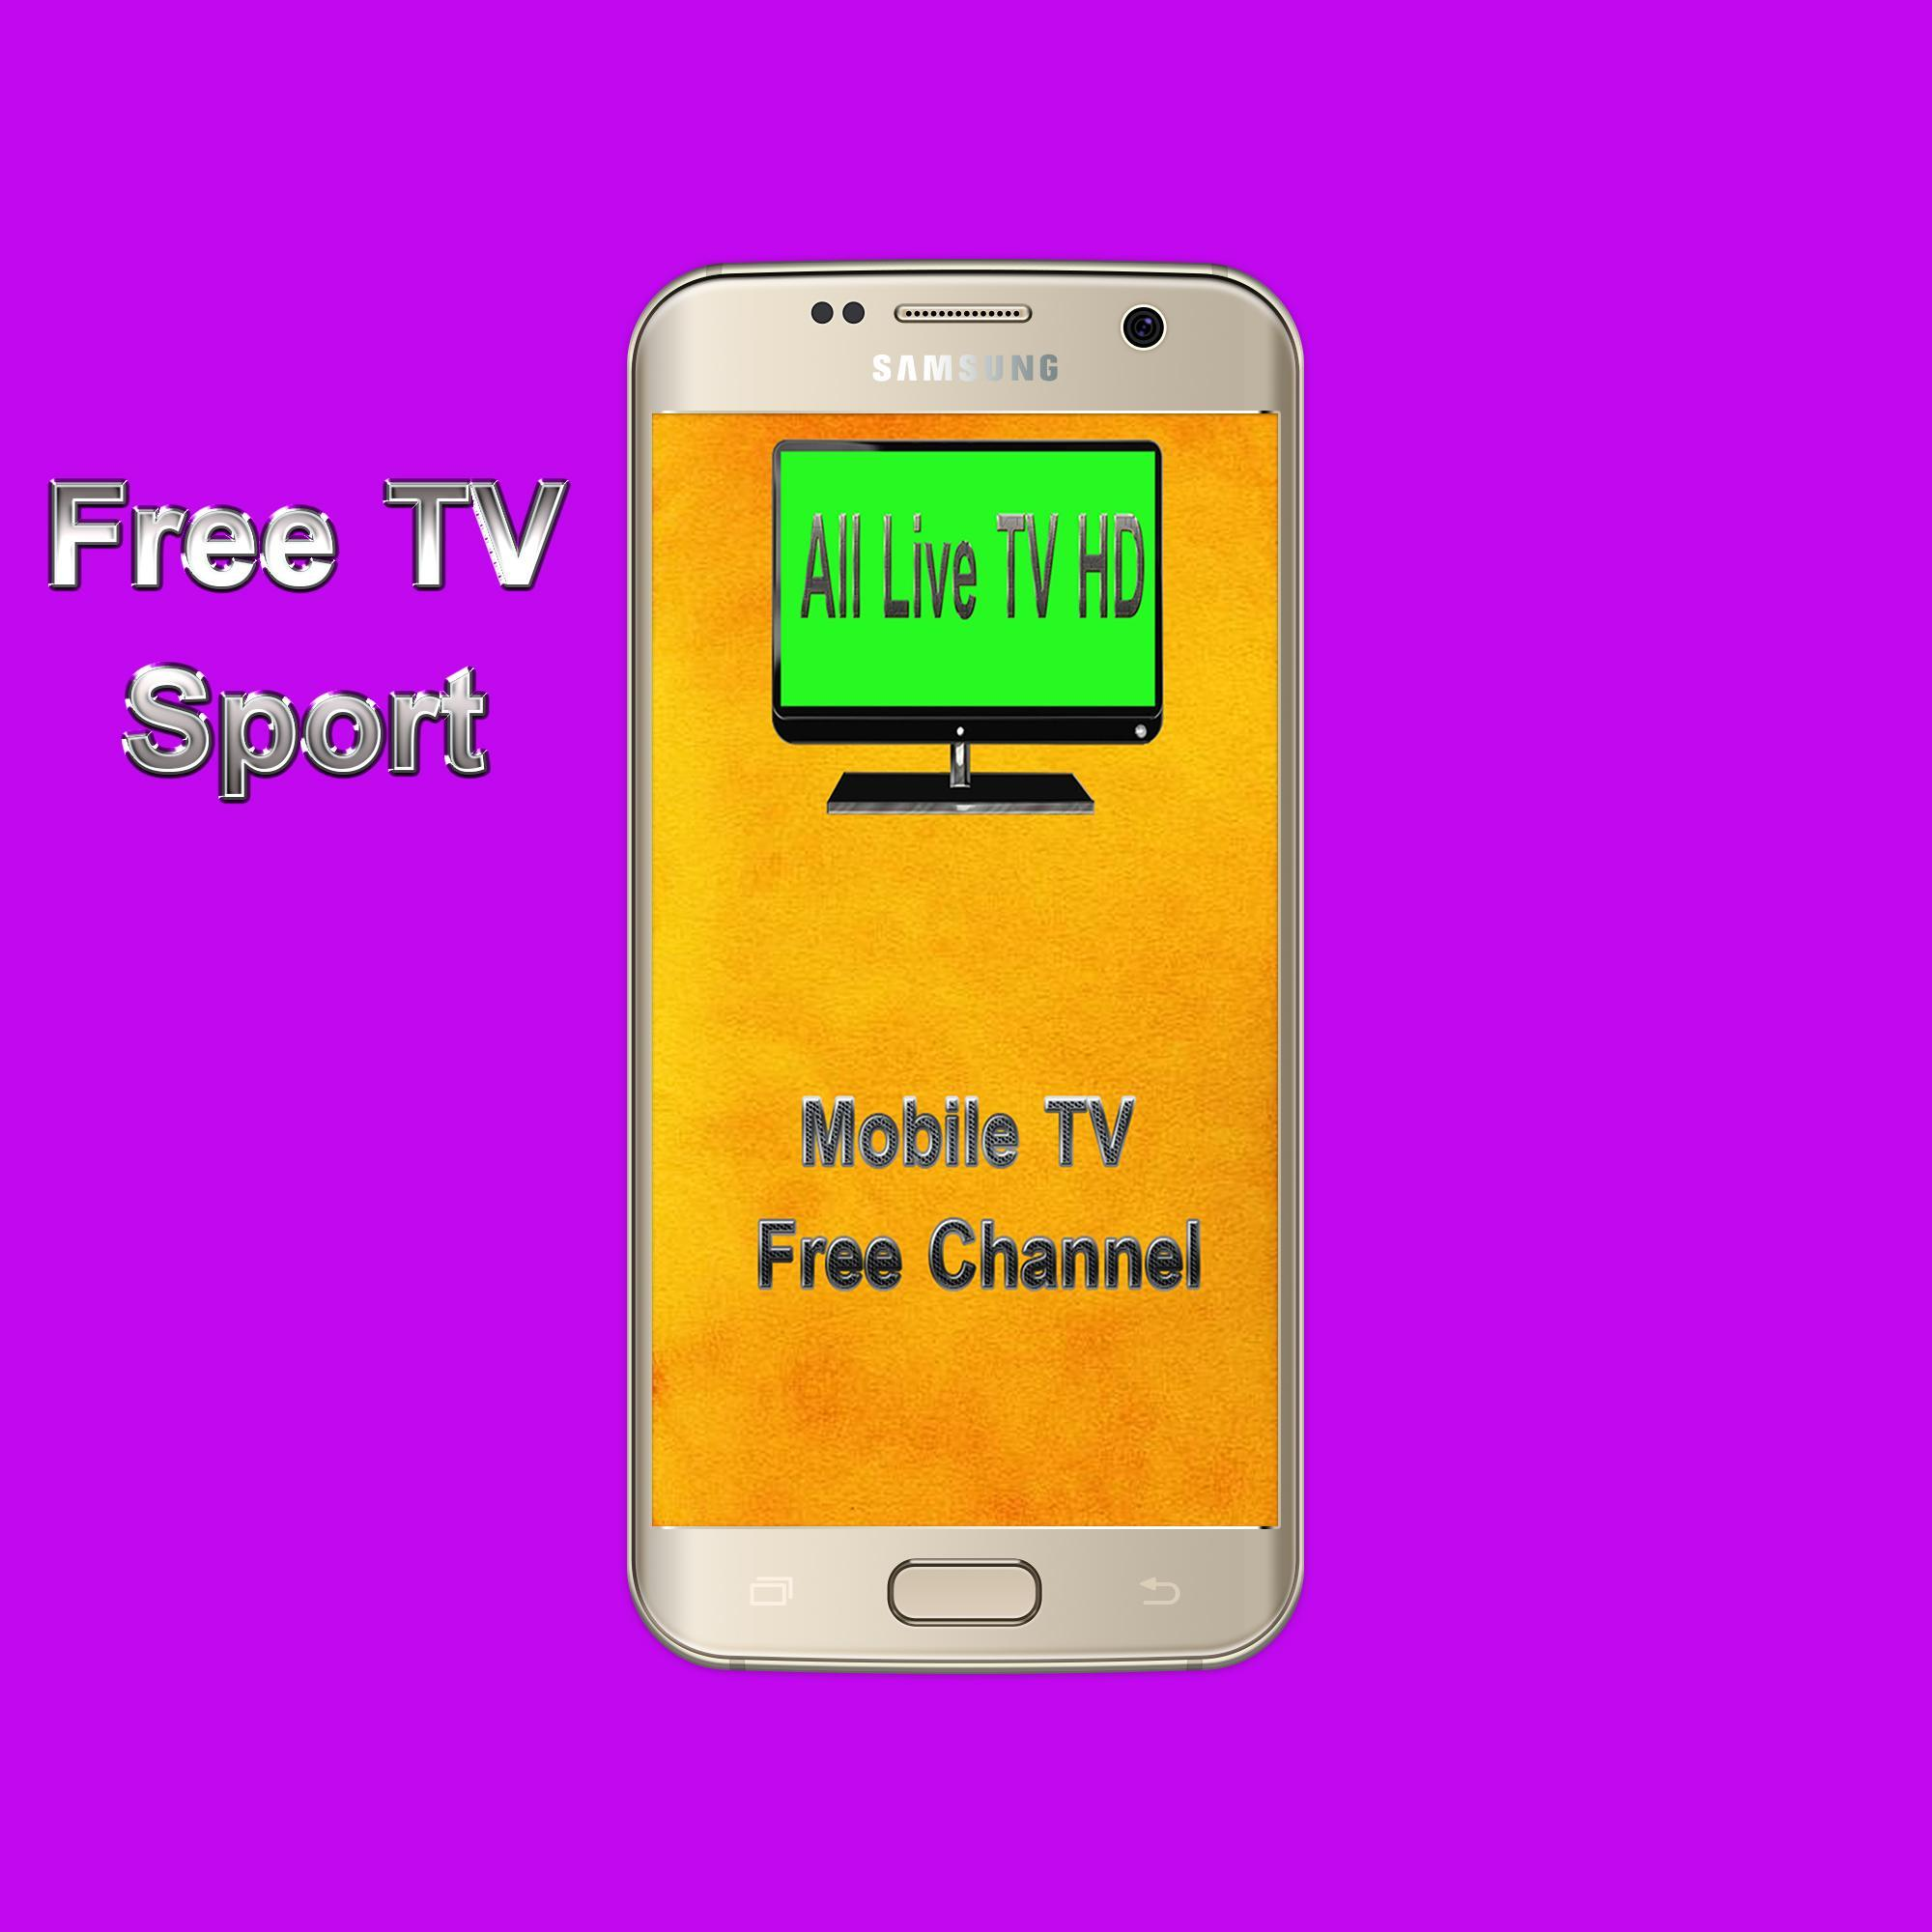 Mobile TV Free Channel for Android - APK Download